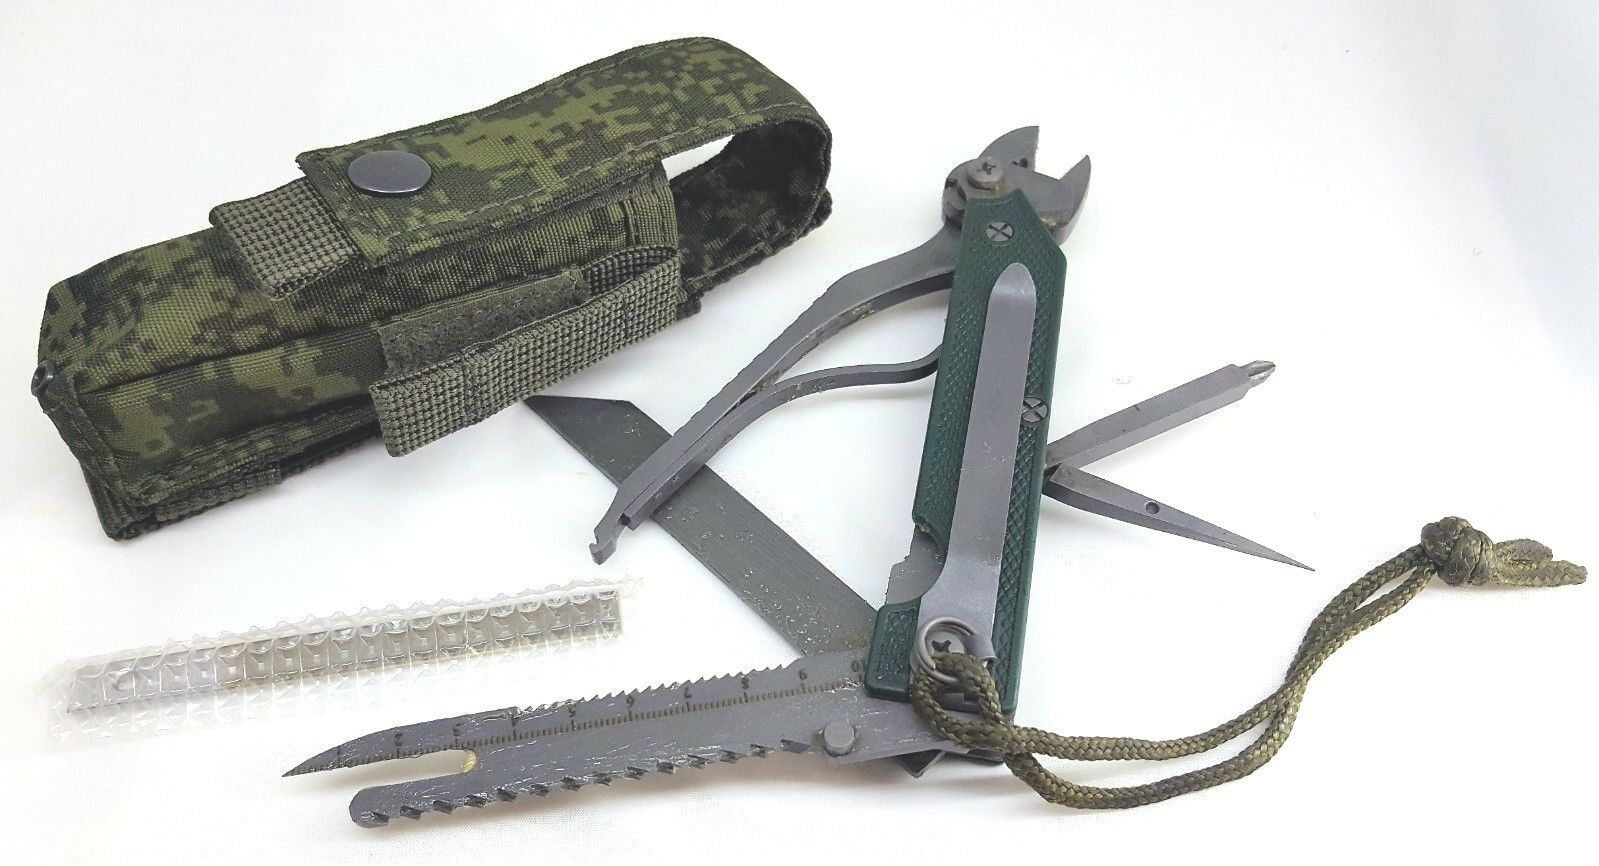 100 Authentic Russian Army Soldier Multitool KNIFE 6E6